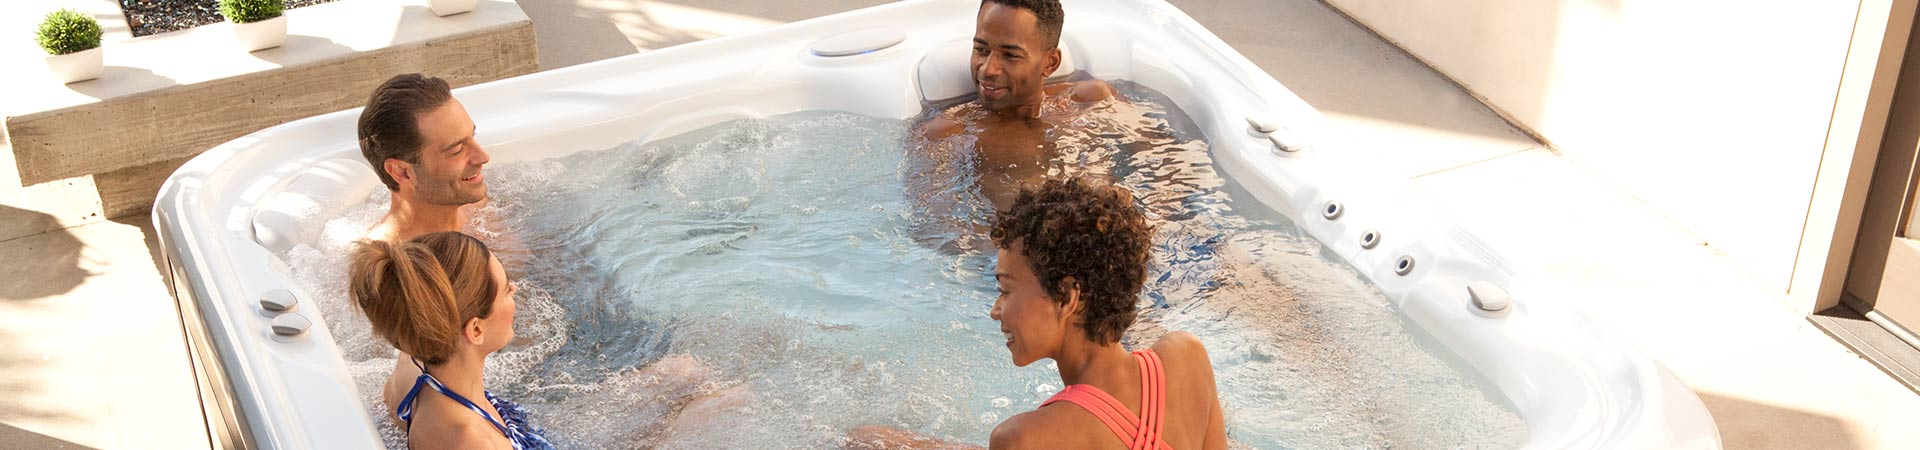 How A Daily Hot Tub Soak Can Help Improve Physical Wellnes